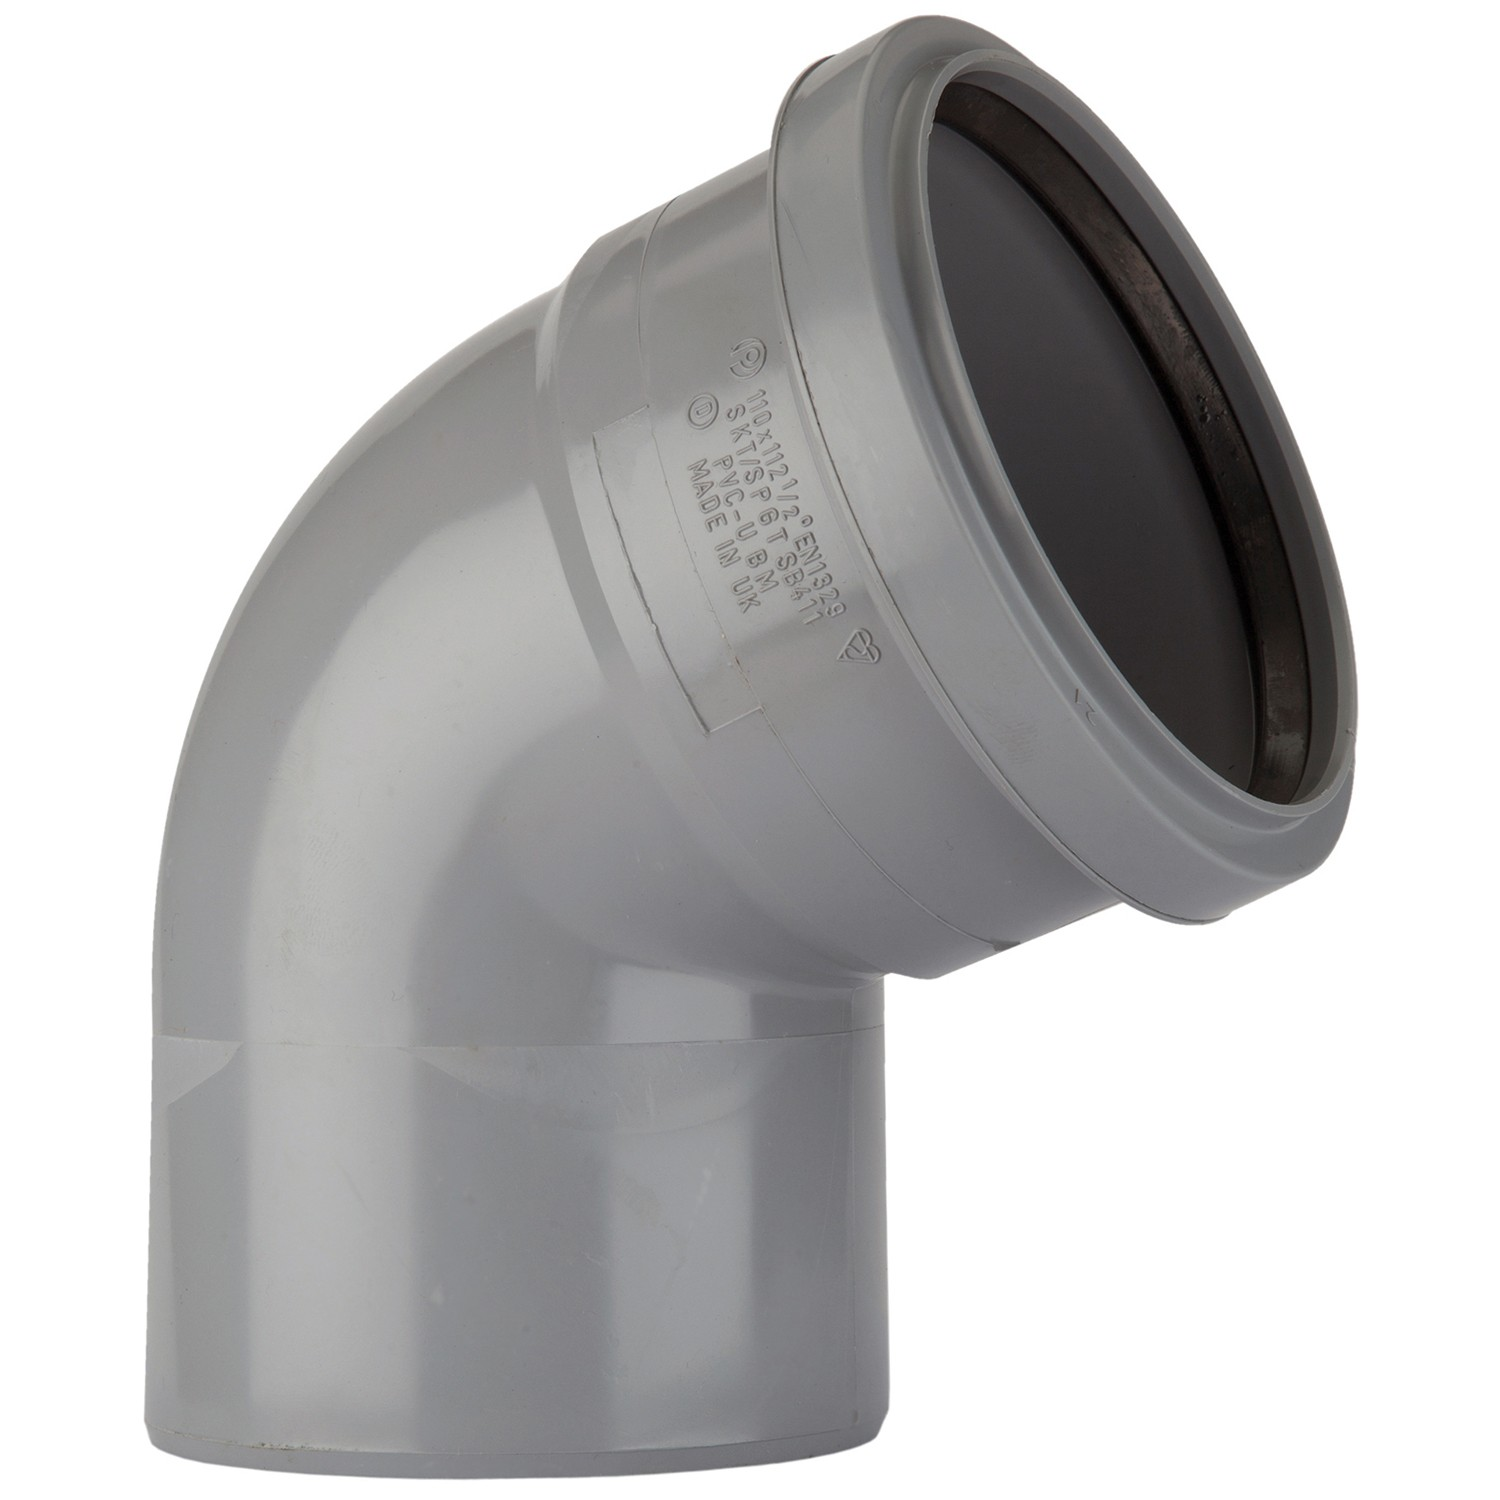 Polypipe 110mm Soil Single Socket 112.5 Degree Bend - Grey